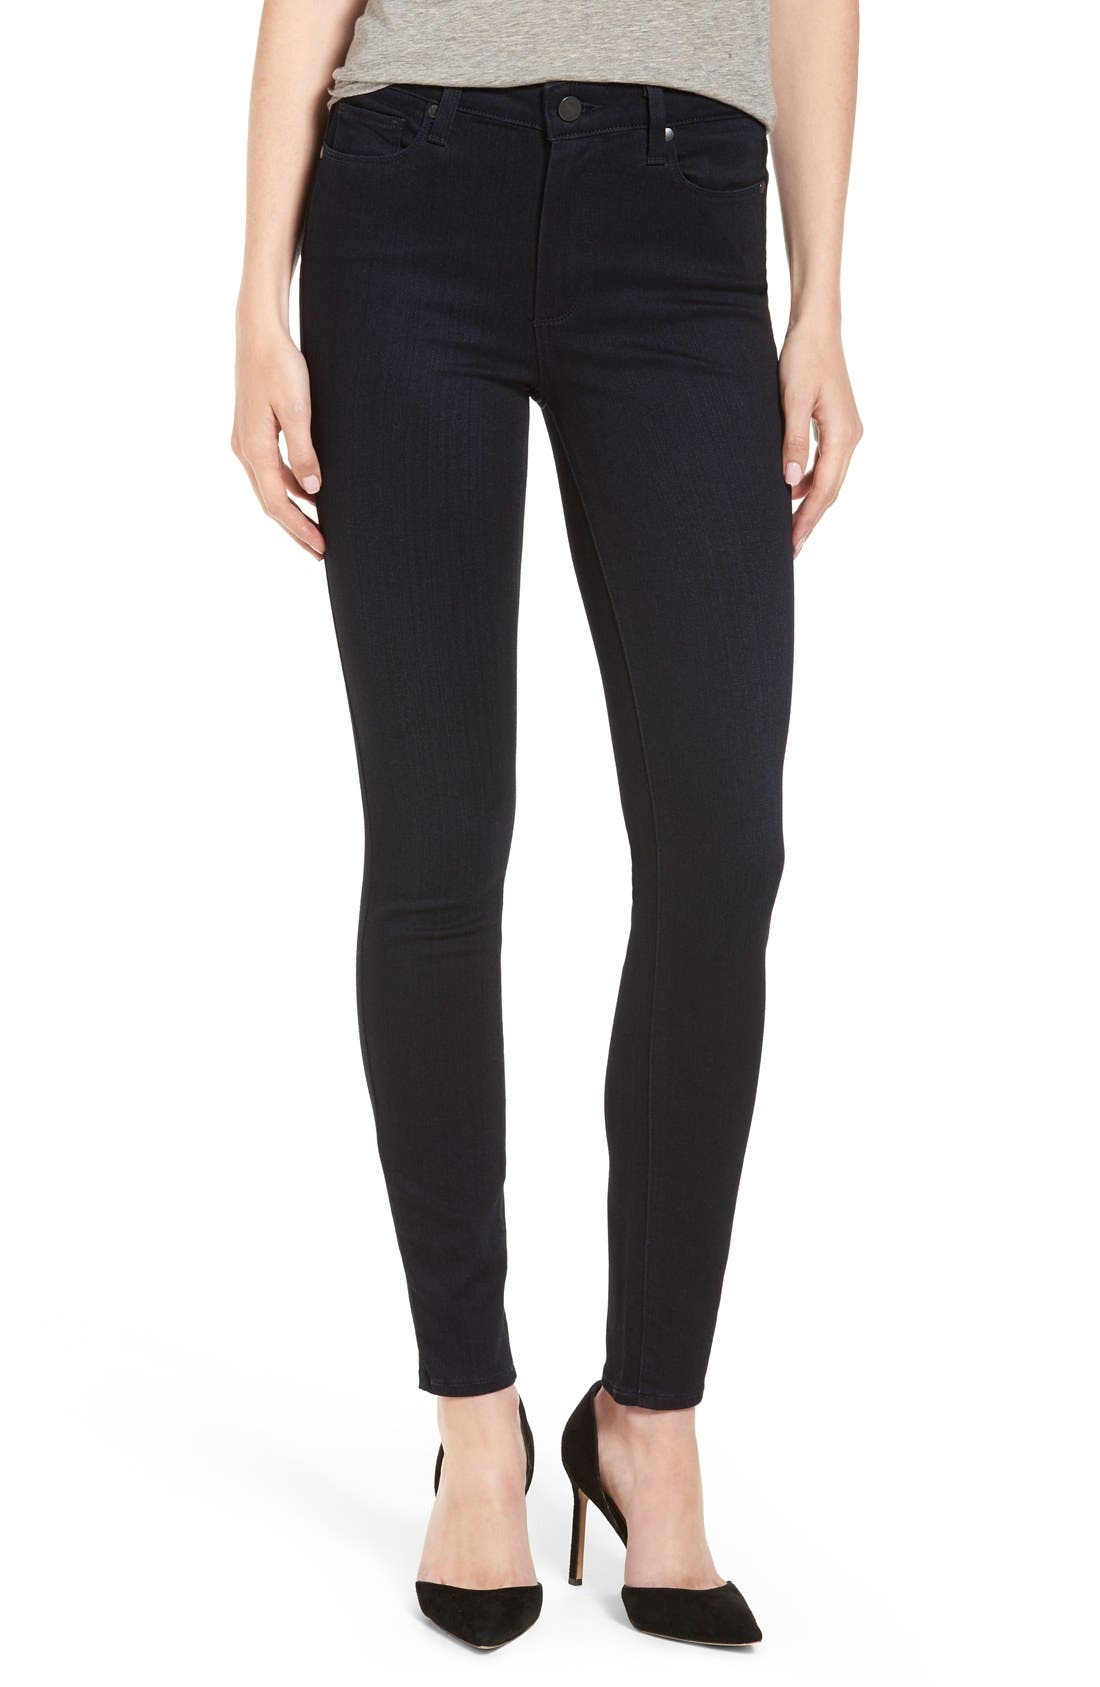 PAIGE Transcend - Hoxton High Waist Ultra Skinny Jeans (Emiko) (Nordstrom Exclusive)